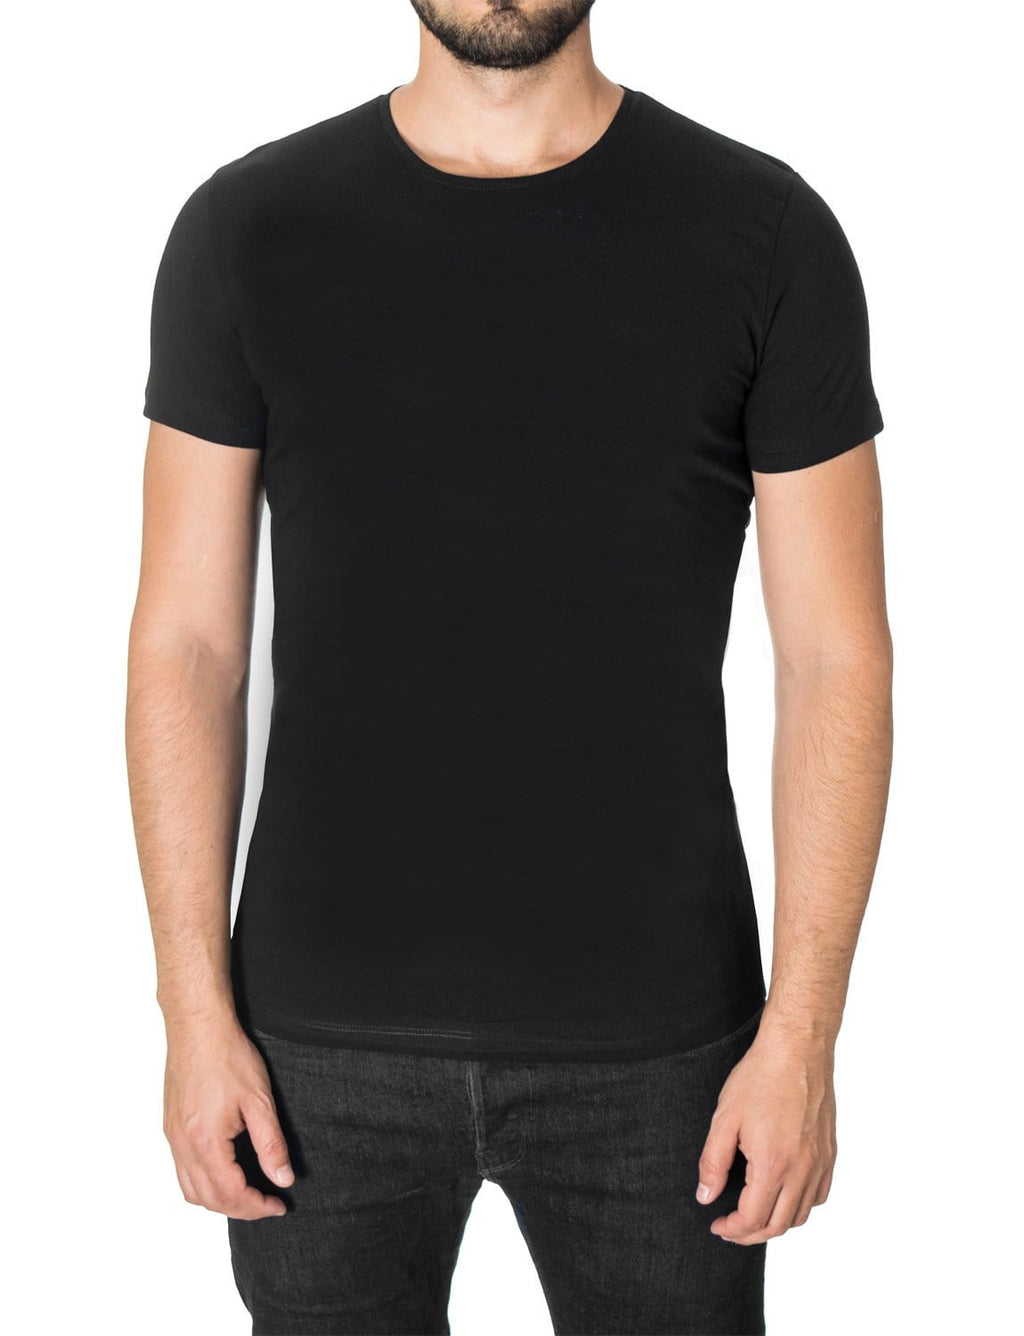 Mens basic crew neck t-shirt black (MOD1001RN)